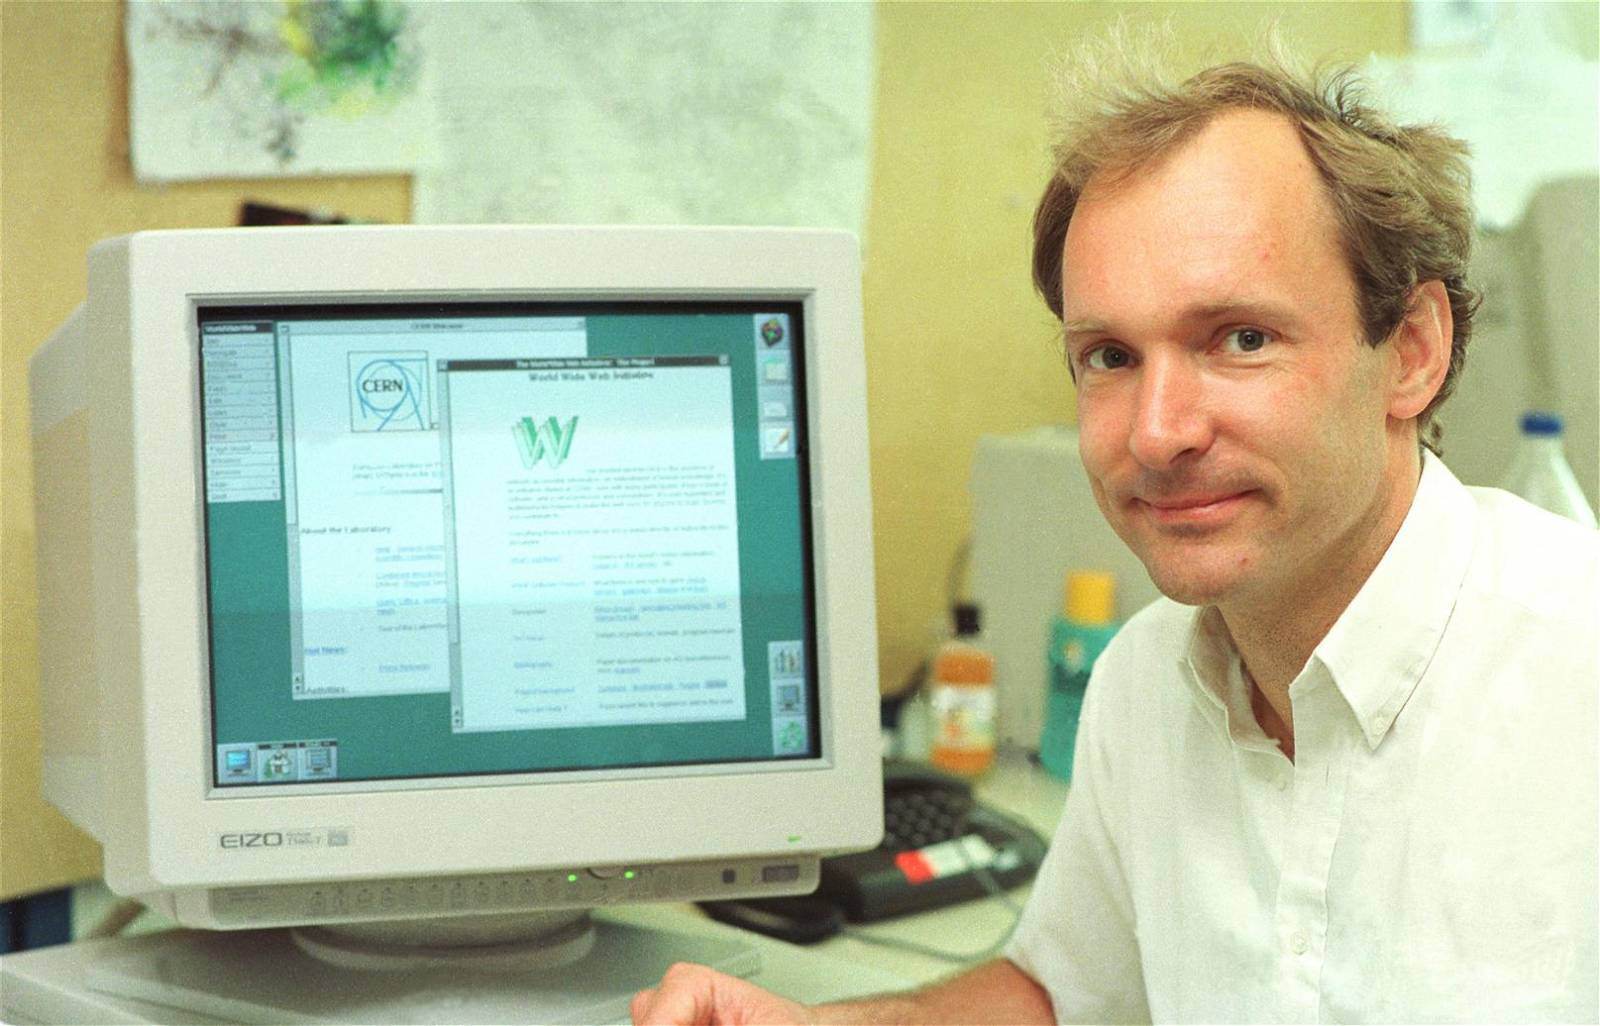 tim berners lee inventore del world wide web